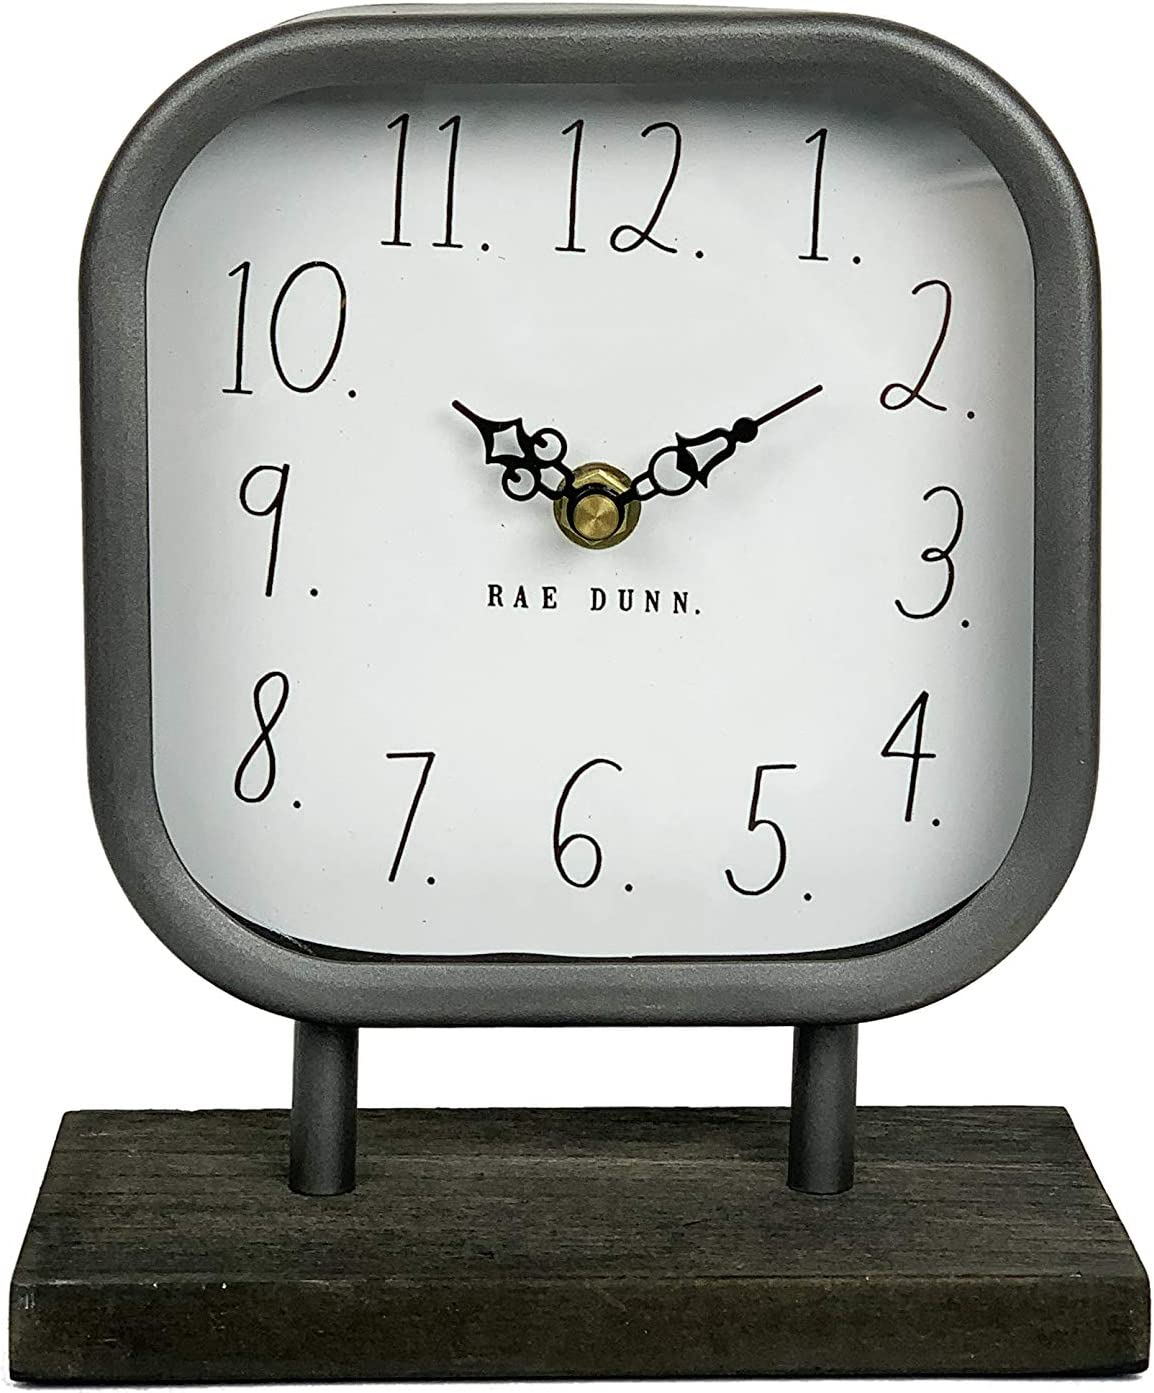 Rae Dunn Desk Clock - Battery Operated Modern Metal Rustic Design with Wooden Base for Bedroom, Office, Kitchen - Small Classic Analog Display - Chic Home Décor for Desktop Table, Countertop